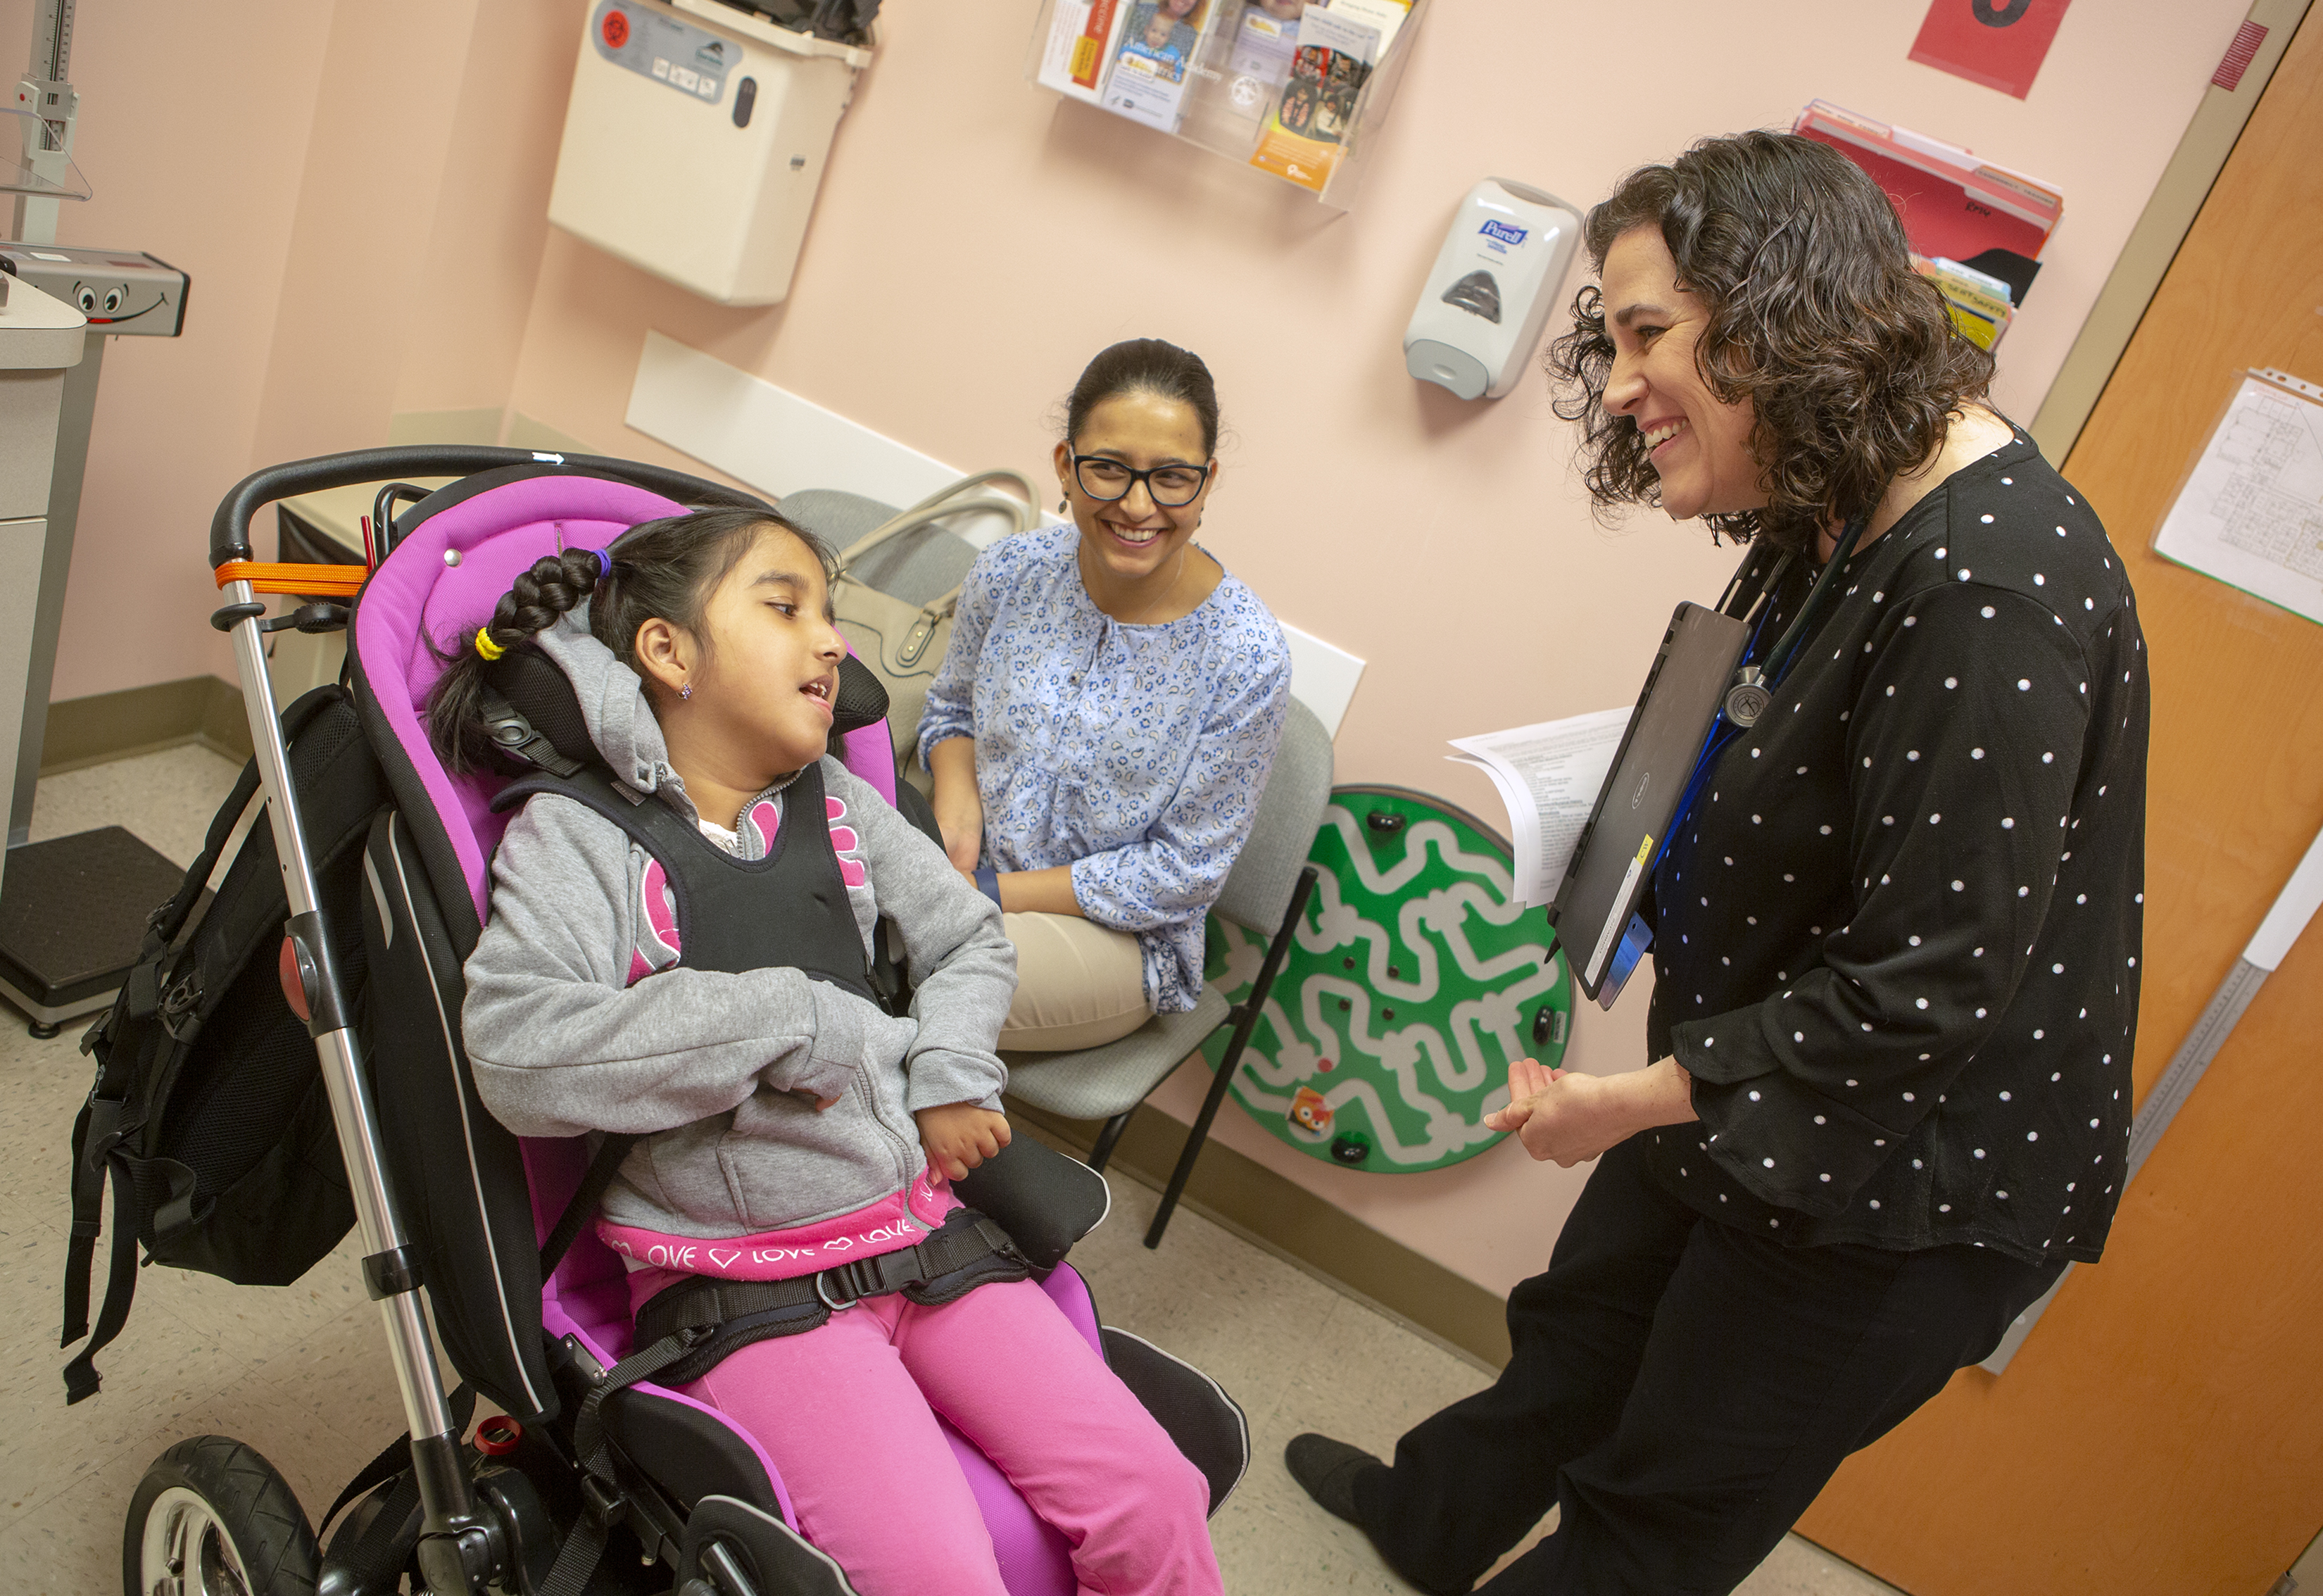 Dr. Laura Murphy, pediatrician with Penn State Children's Hospital's Pediatric Complex Care Program, smiles and bends down to greet her patient, Brinda Rizal, who is in a wheelchair. Brinda, who has braids and is wearing a sweatshirt and pants, is strapped into the wheelchair and looks up at Murphy, who is wearing a polka dotted shirt and pants and wears a stethoscope around her neck. Brinda's mother, Basudha Rizal, wearing glasses and a printed top and pants, is sitting in a chair against the wall. She smiles at her daughter. A soap dispenser, pamphlet rack and folders are hanging on the wall of the exam rom.